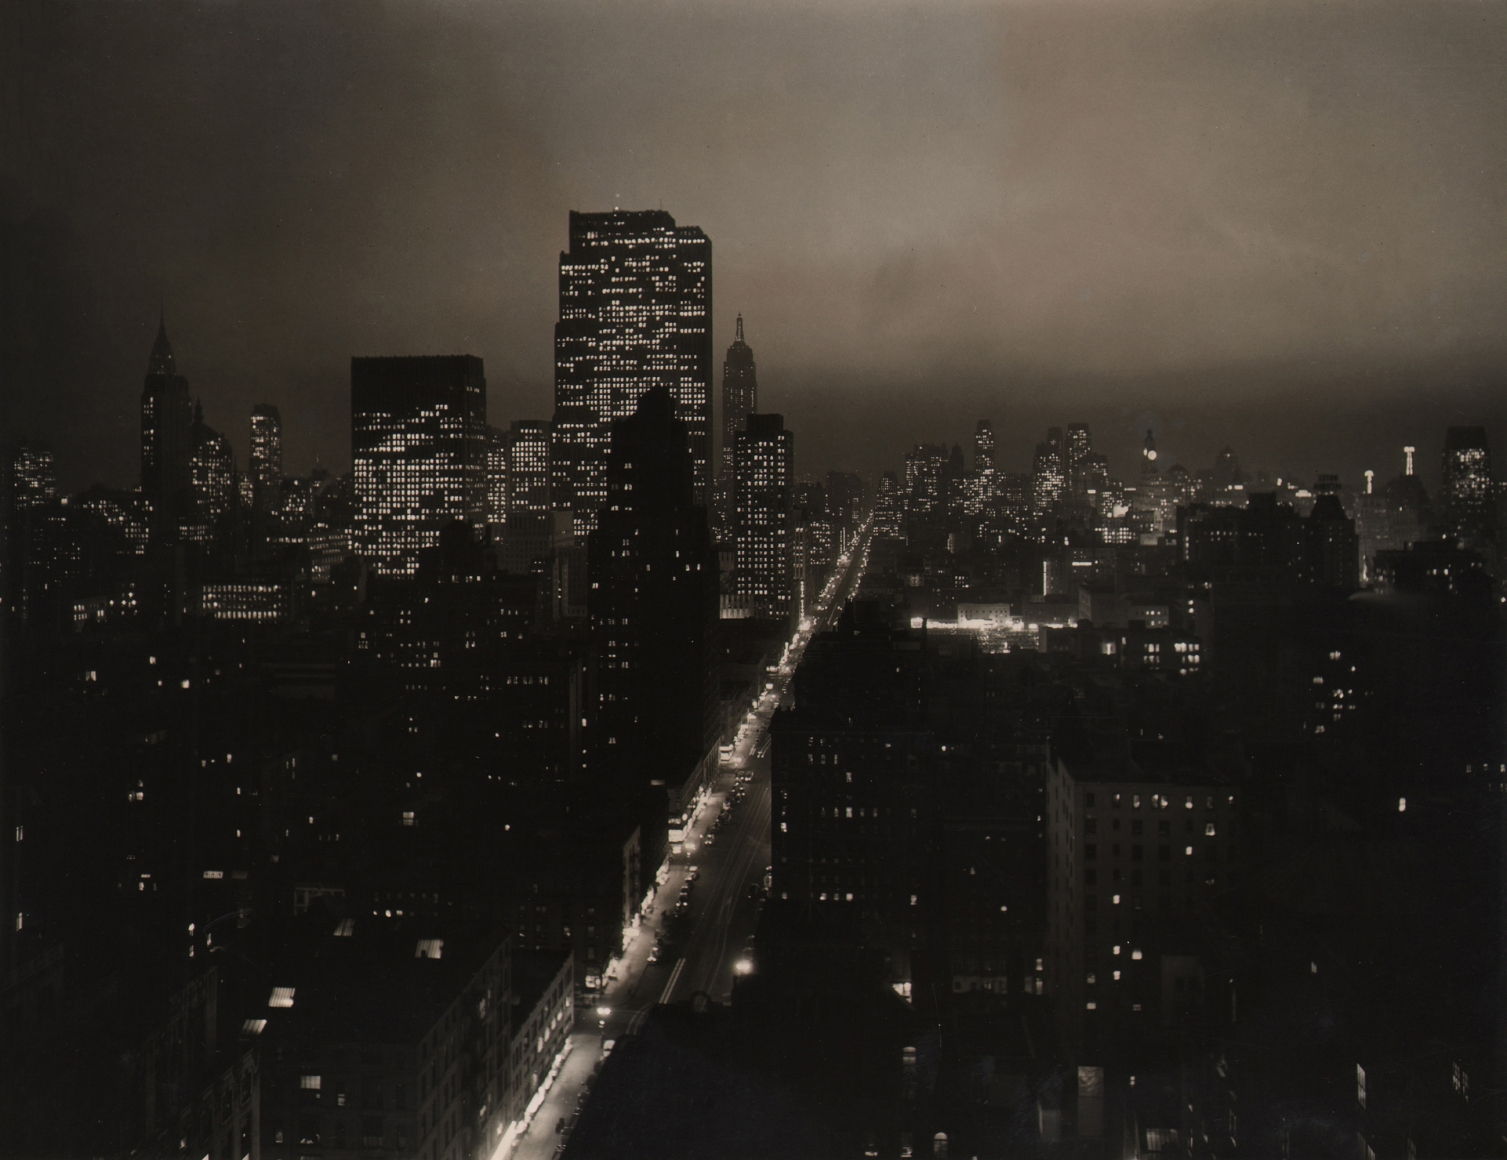 Paul J. Woolf, Sixth Avenue Looking South, c. 1935. Night time cityscape with an illuminated Sixth Avenue running diagonally up and right in the center of the frame.